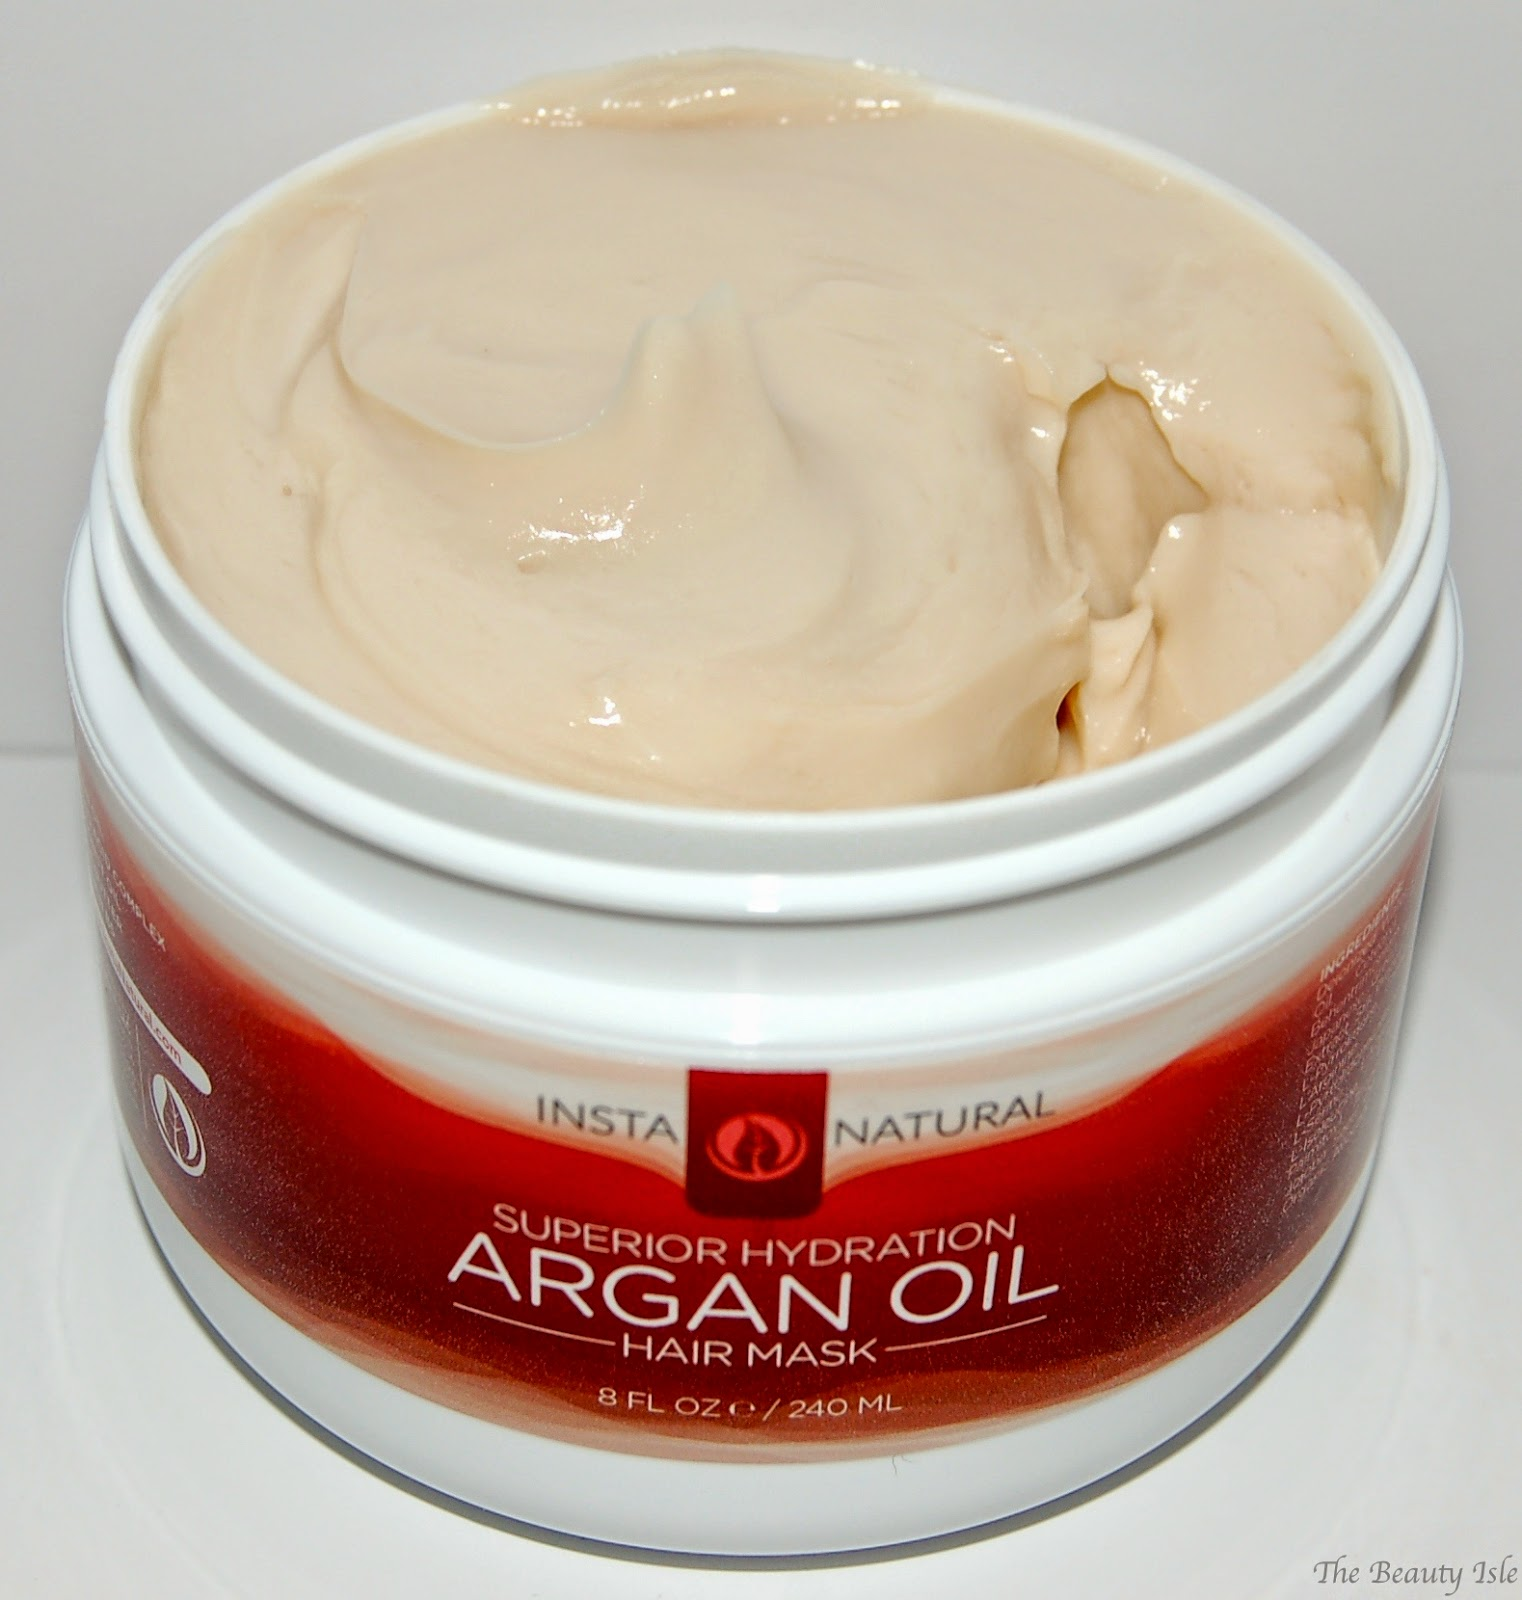 InstaNatural Argan Oil Hair Mask